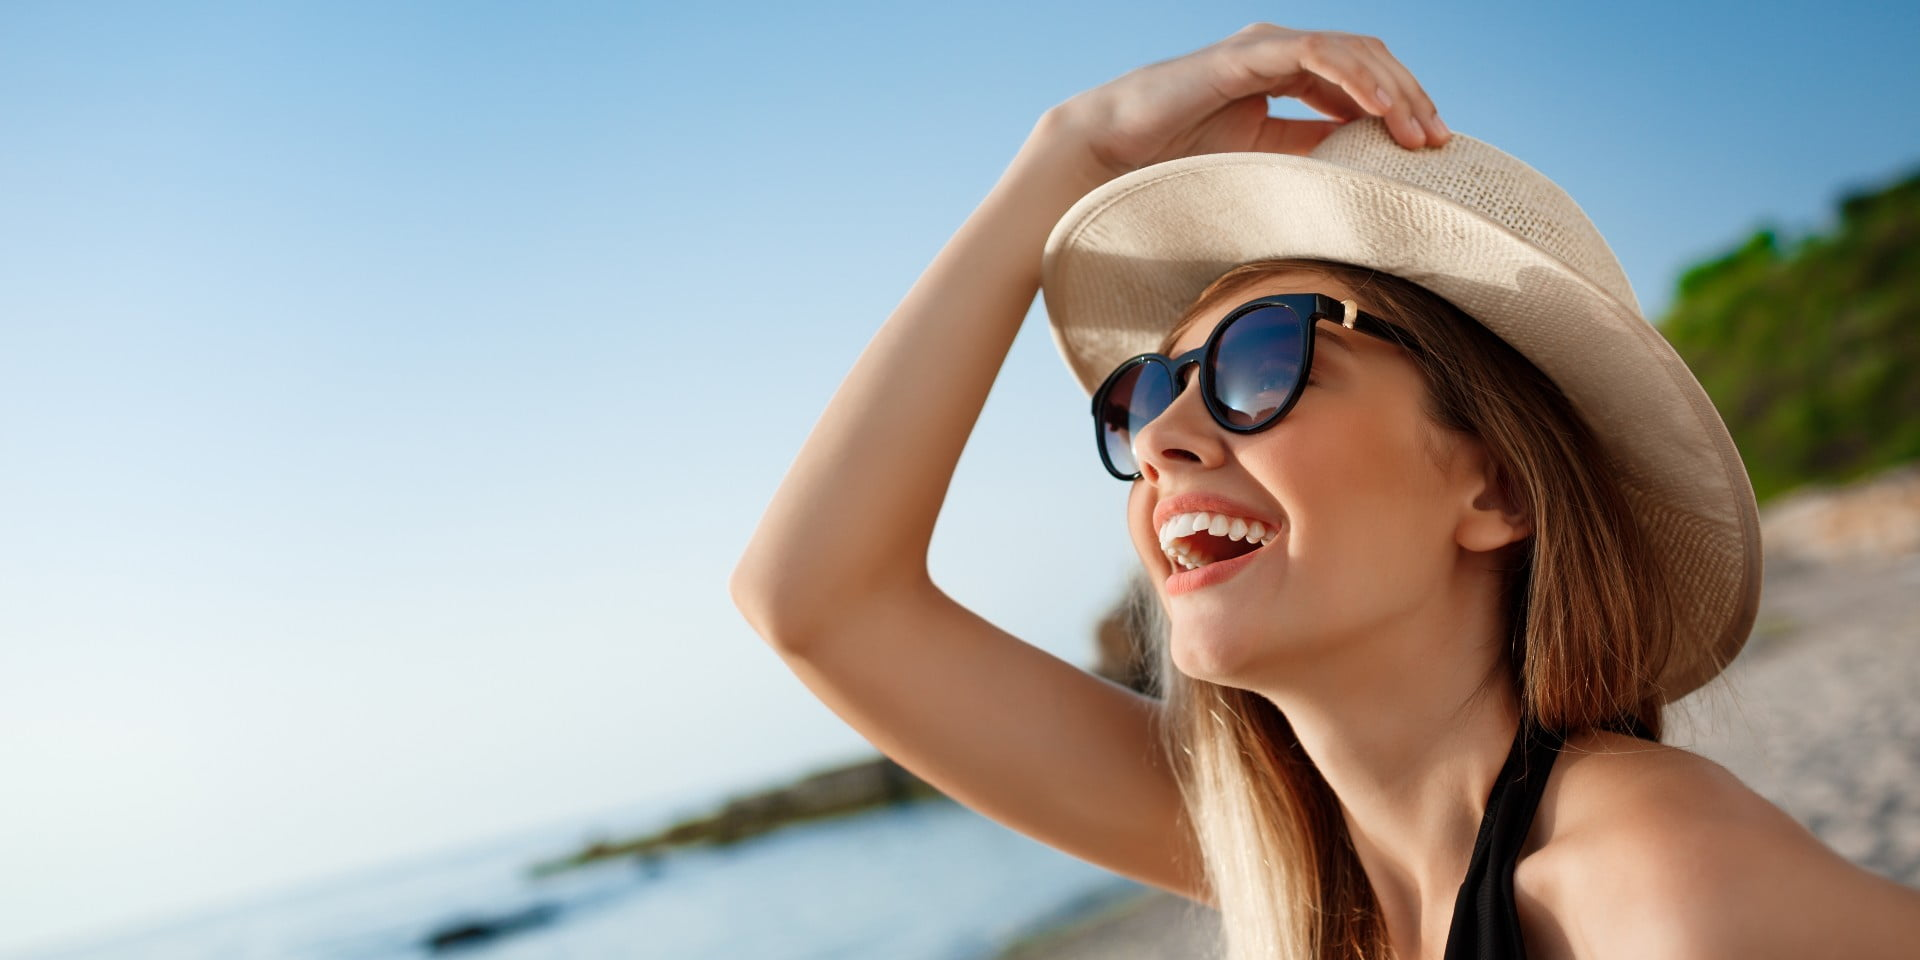 Vitamin D3 - what exactly is it?